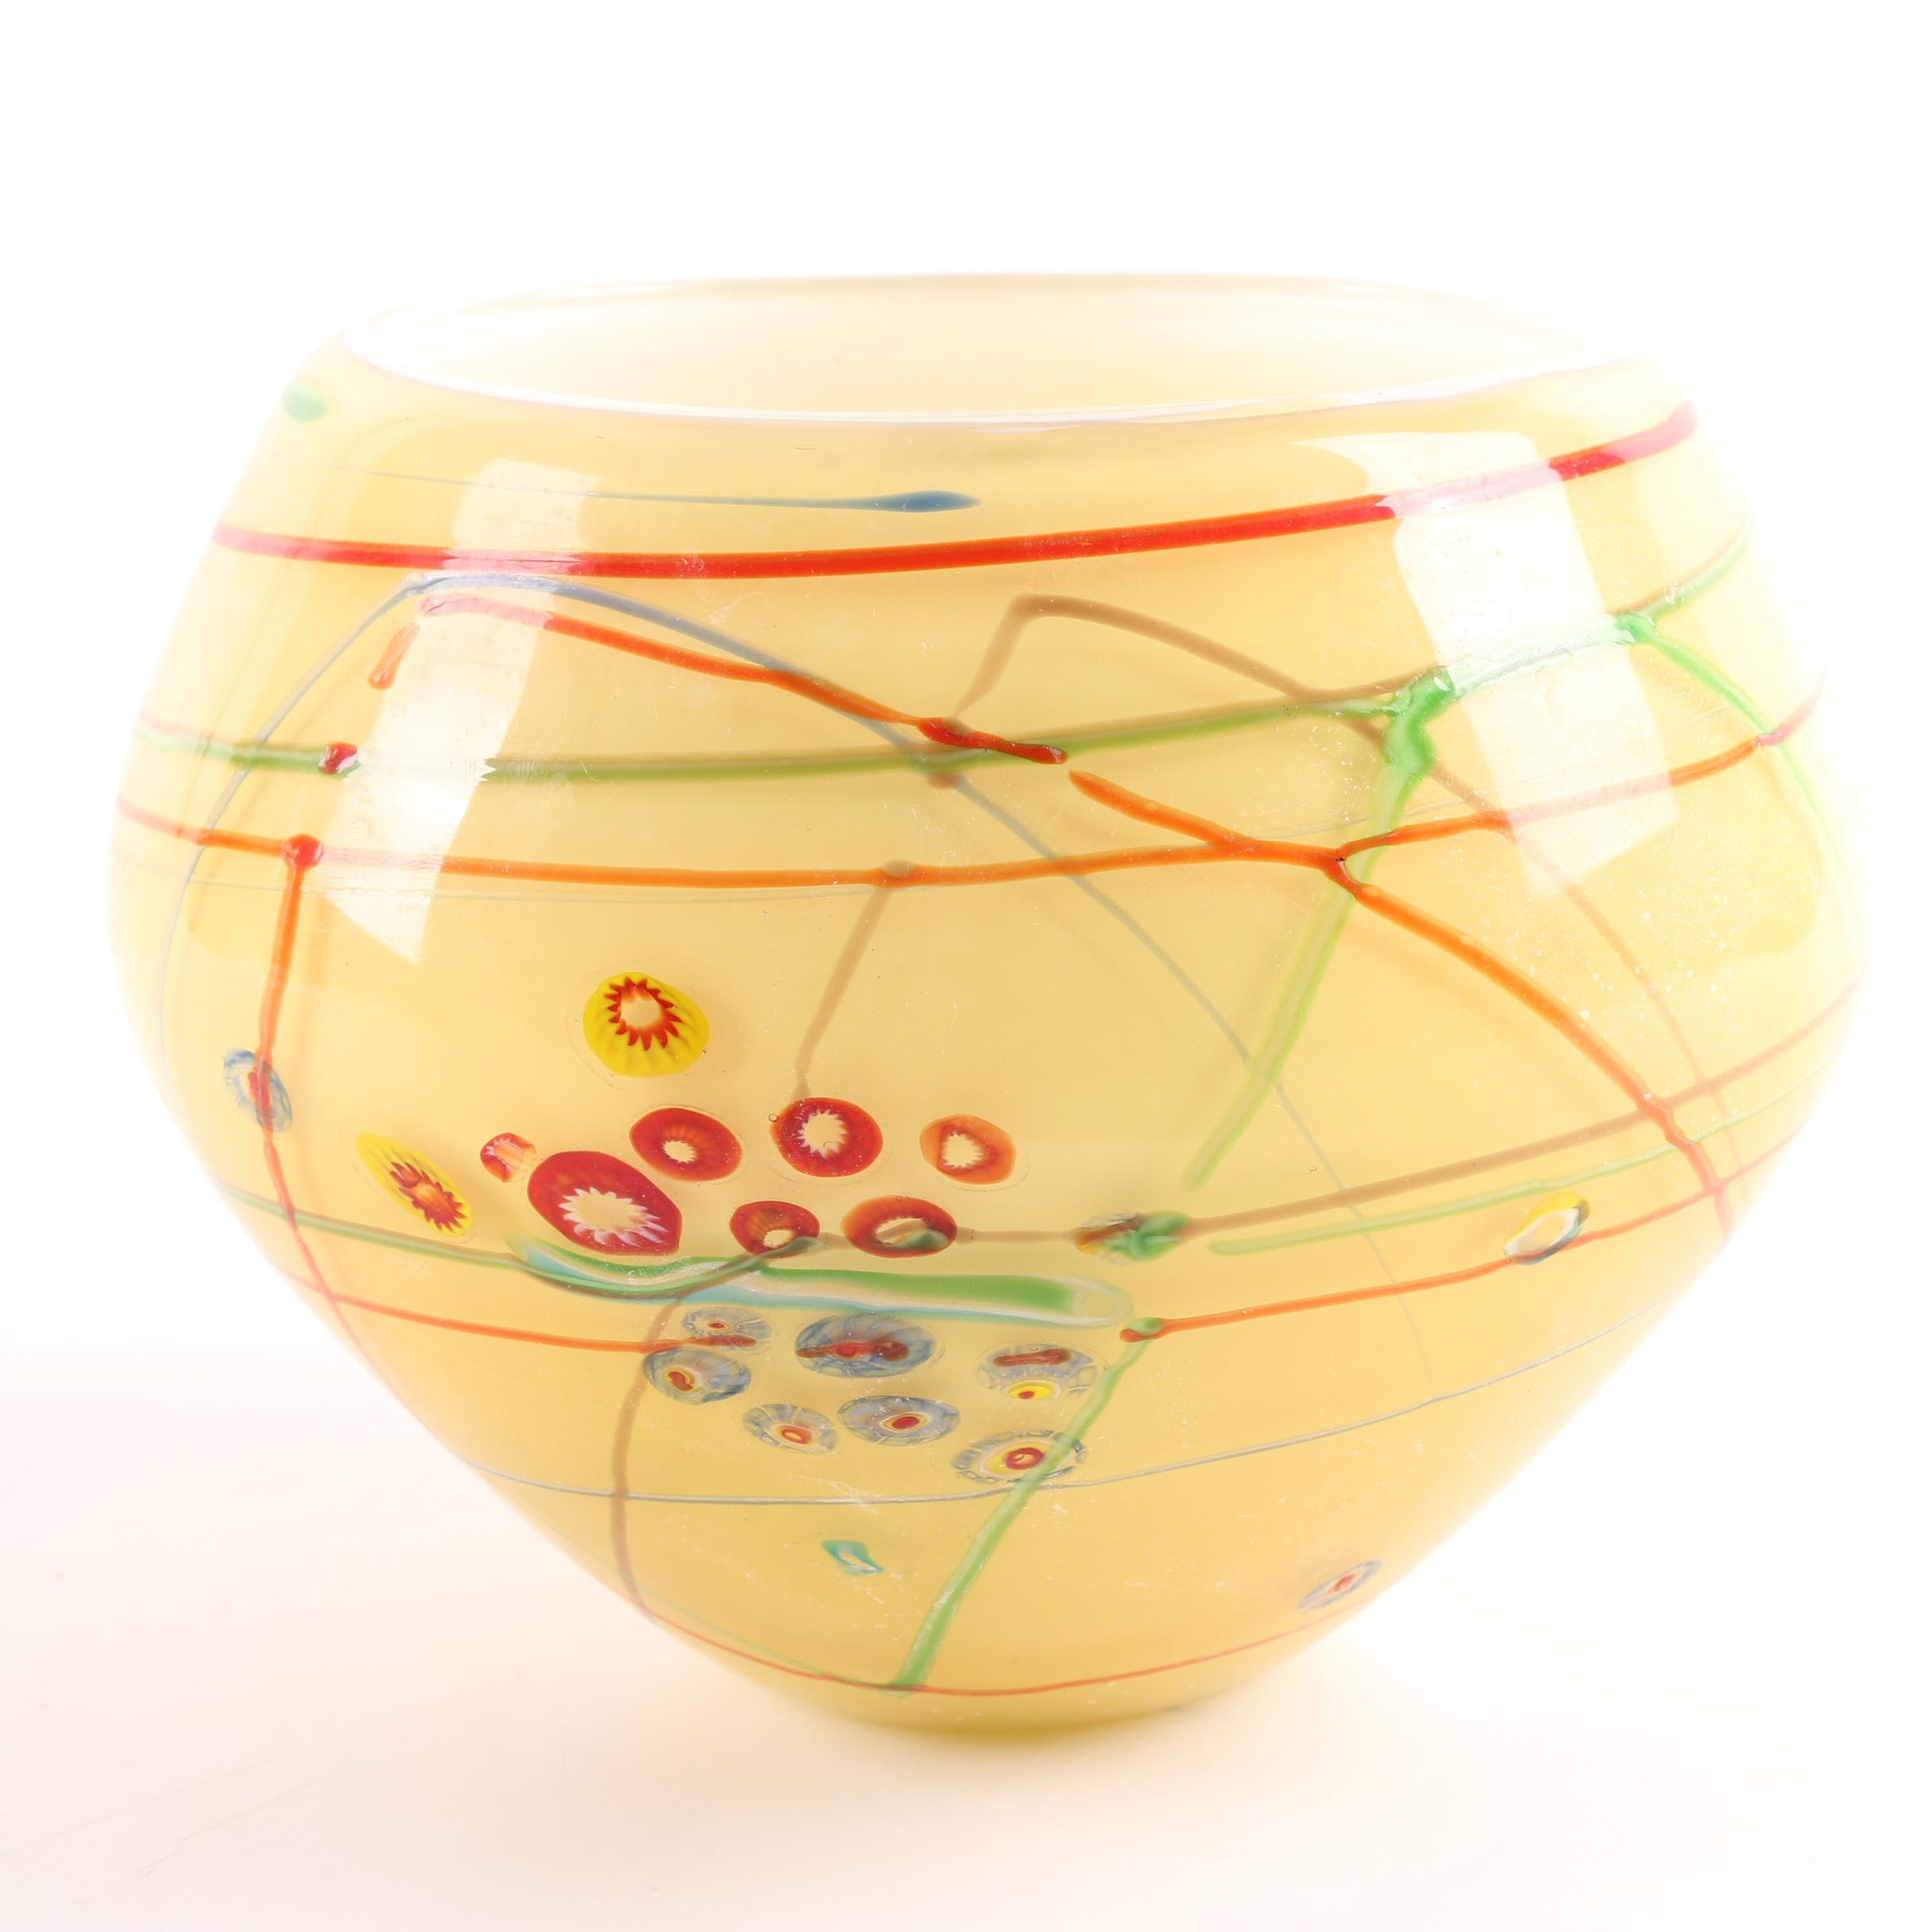 Art Glass Bowl with Colorful Trailing Motif